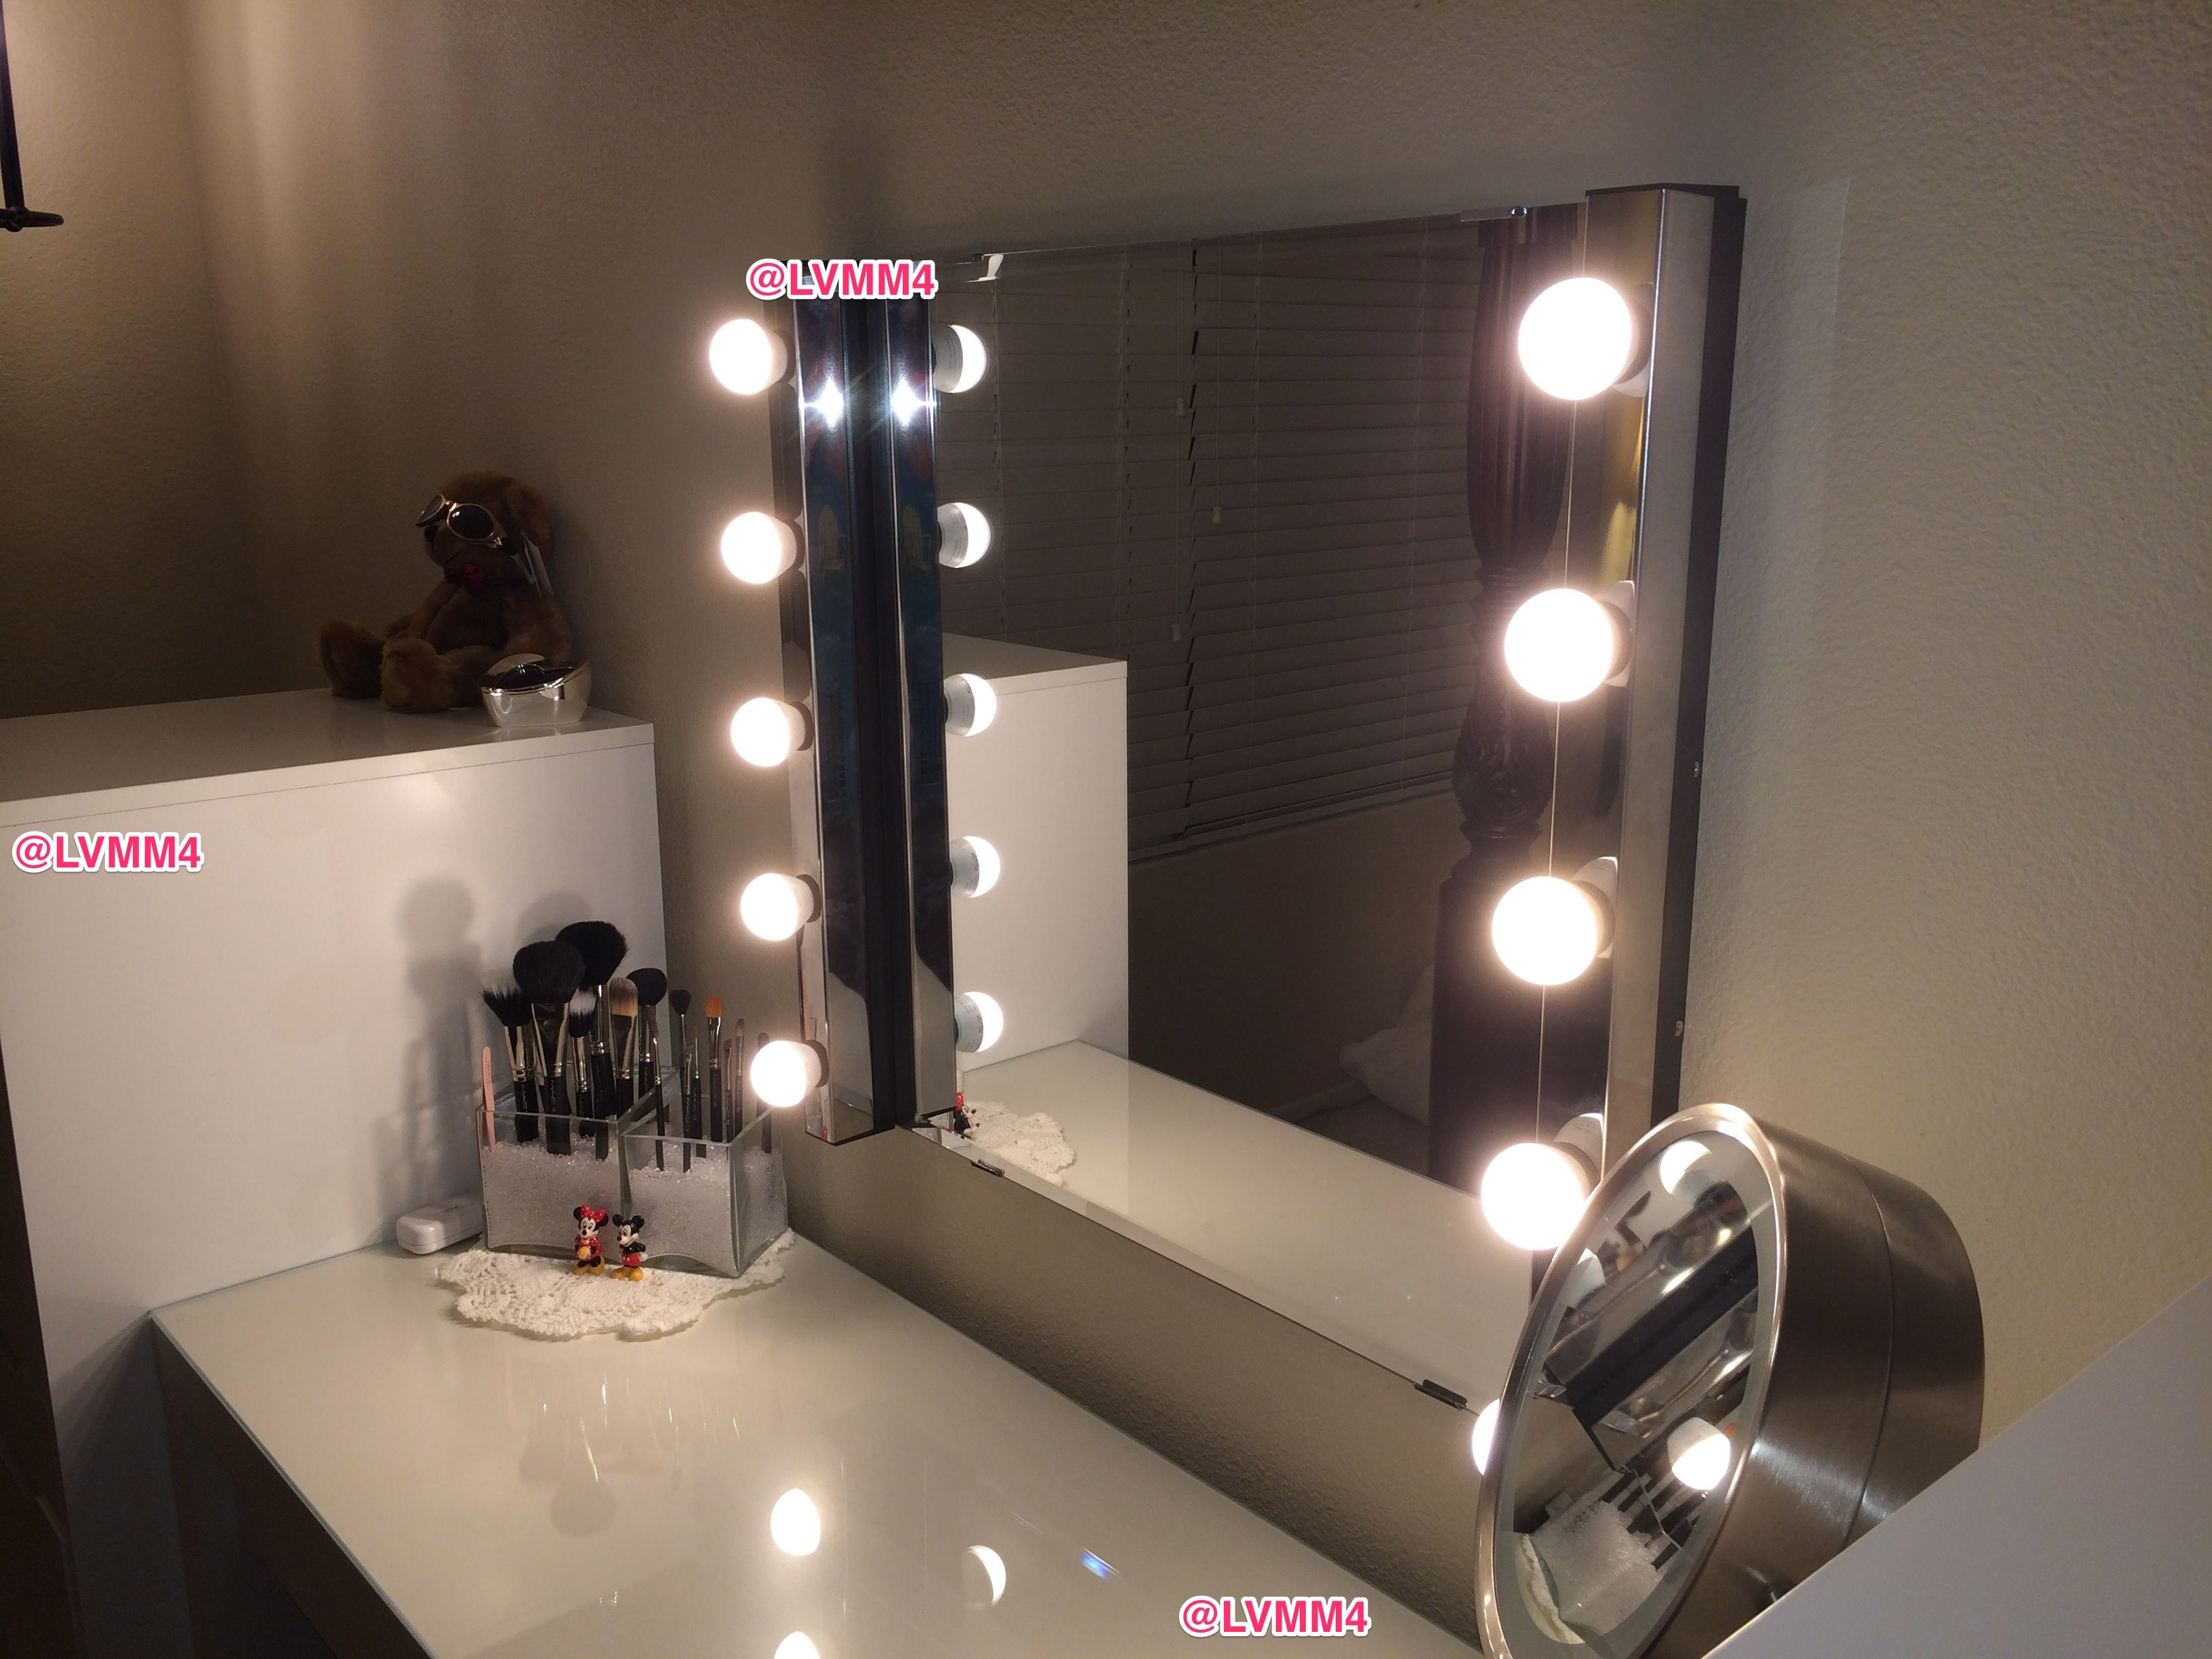 My Vanity Finished I Love It D Close Up Pic Ikea Malm Dressing Table 149 Alex 9 Drawe Bedroom Makeup Vanity Makeup Vanity Makeup Vanity Lighting